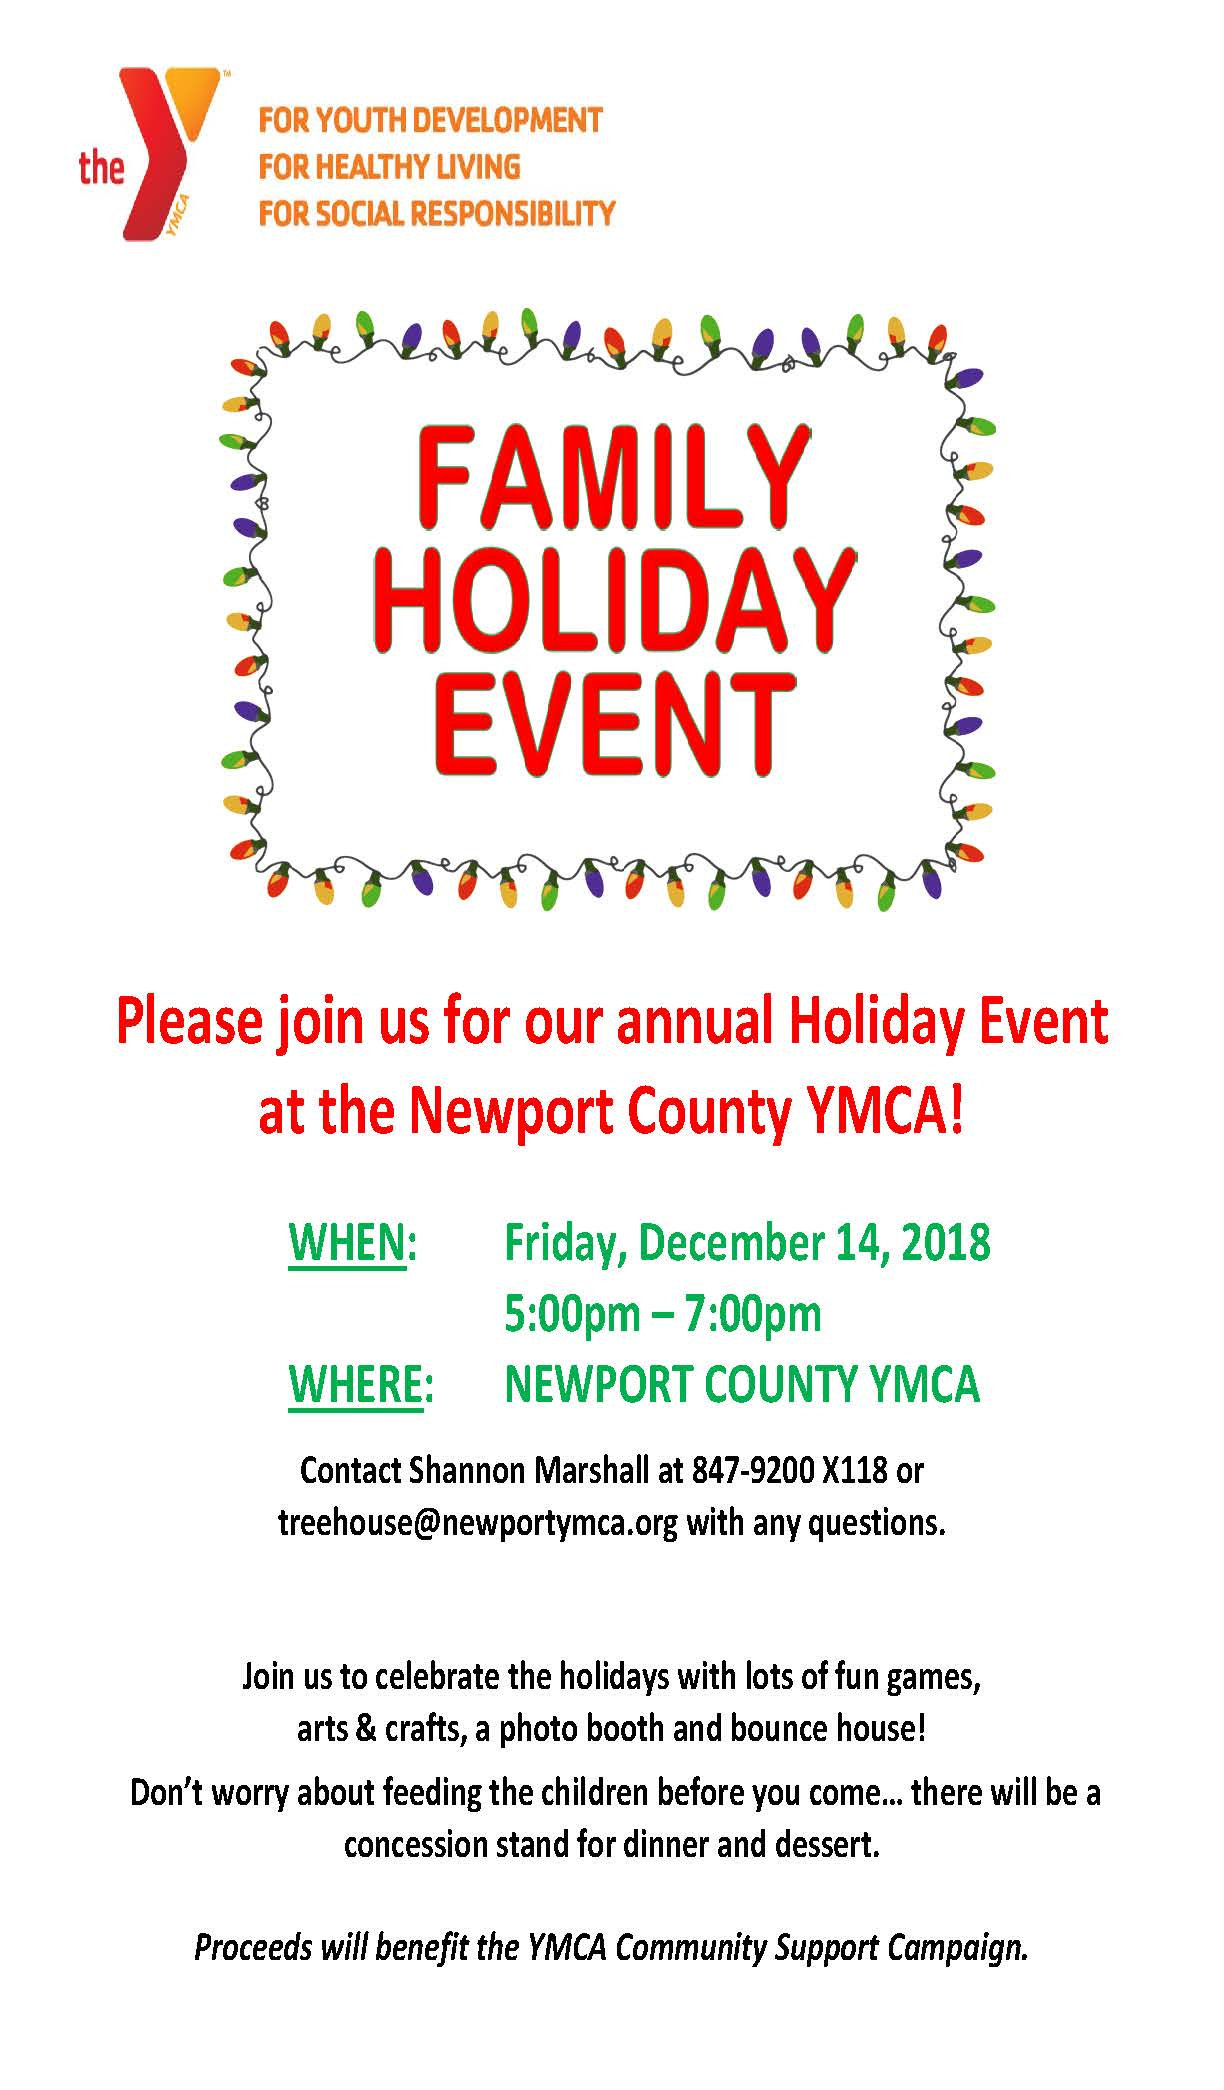 family holiday event 2018 flyer newport ymca